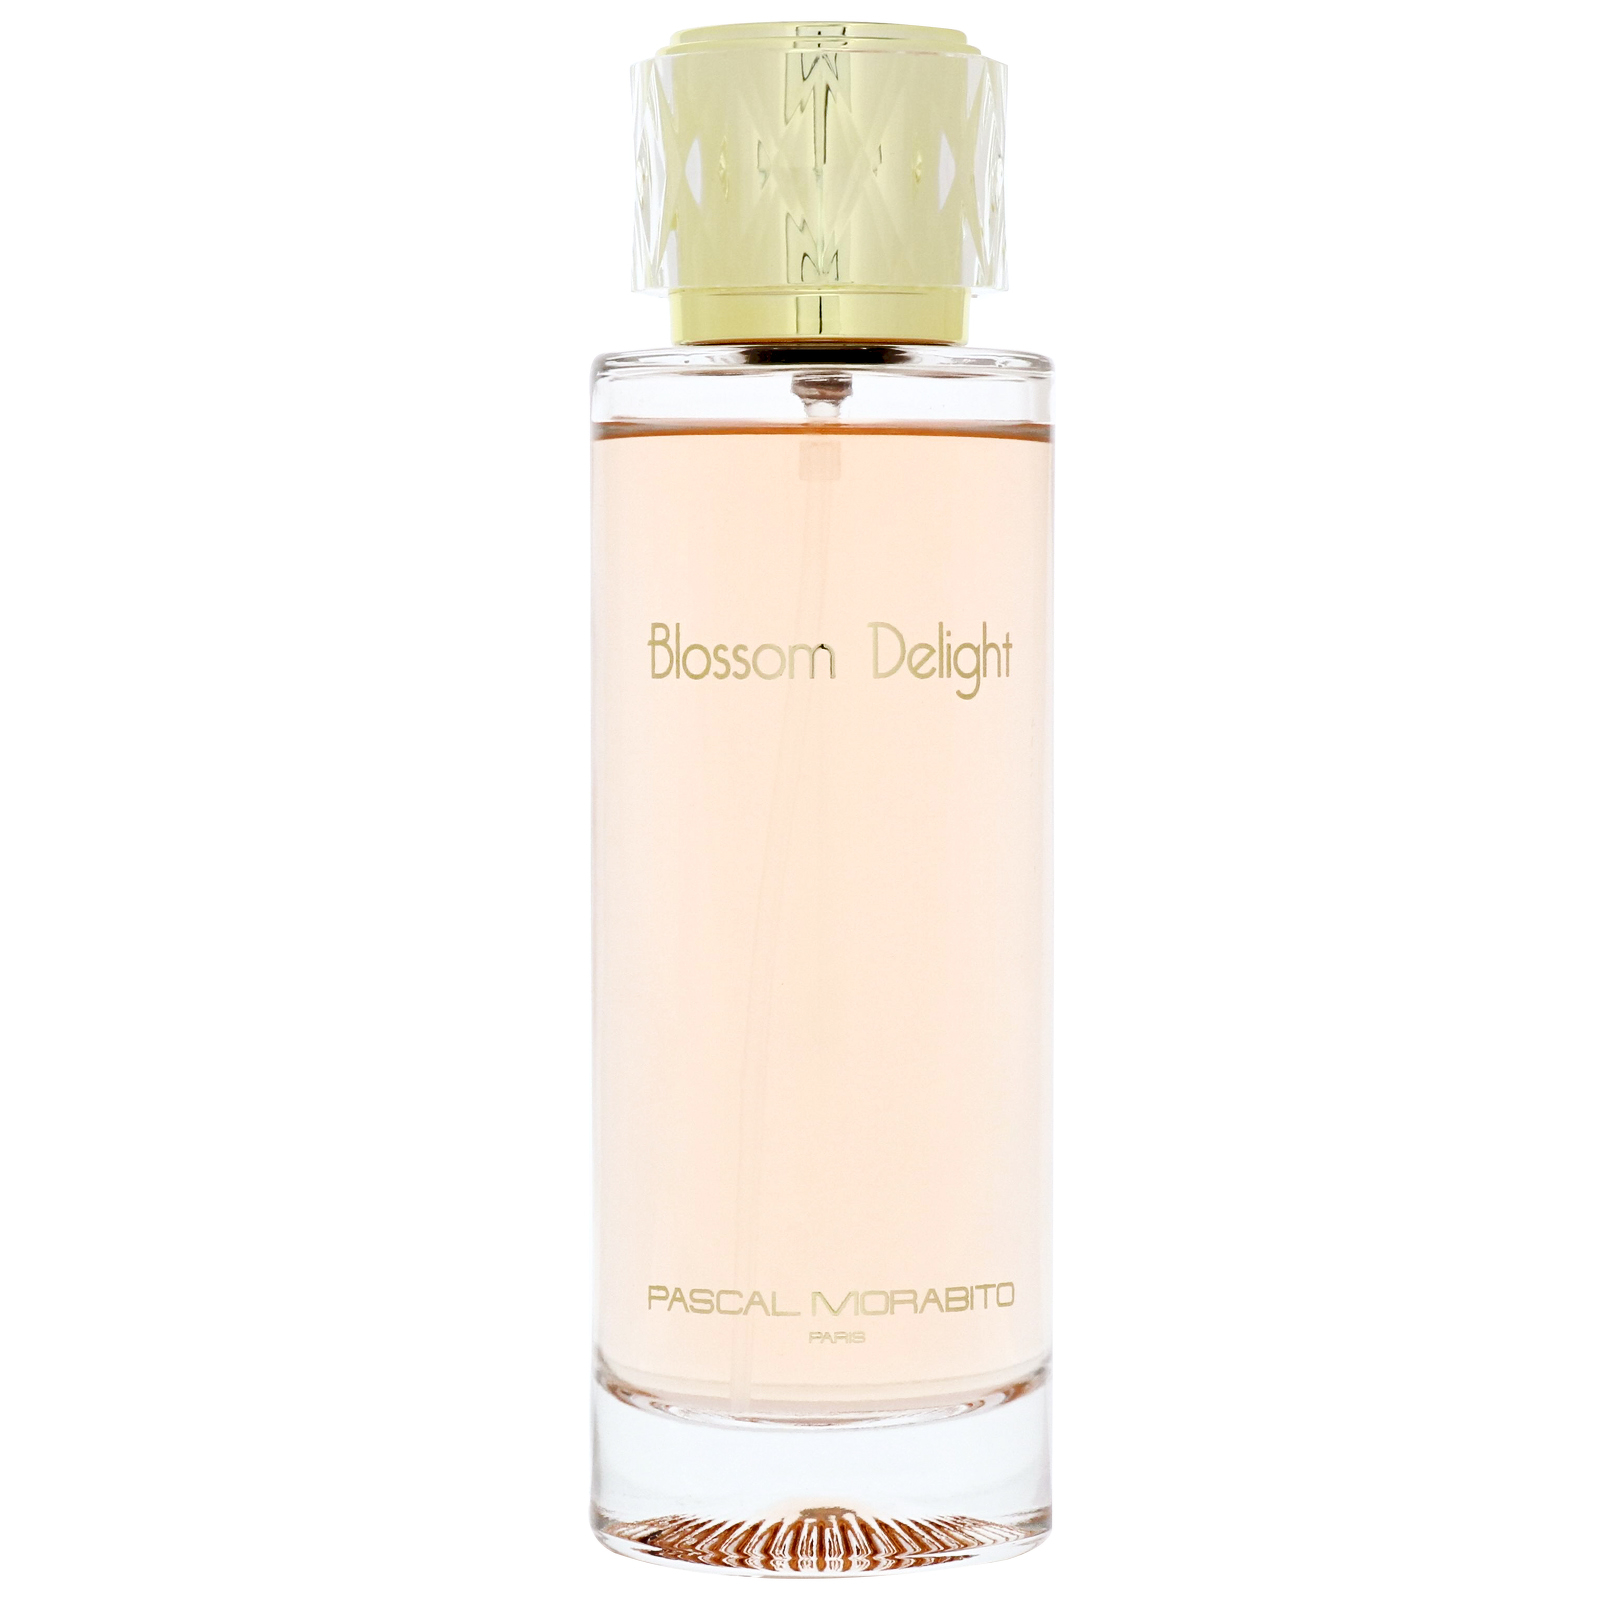 Pascal Morabito Blossom Delight Eau de Parfum Spray 100ml